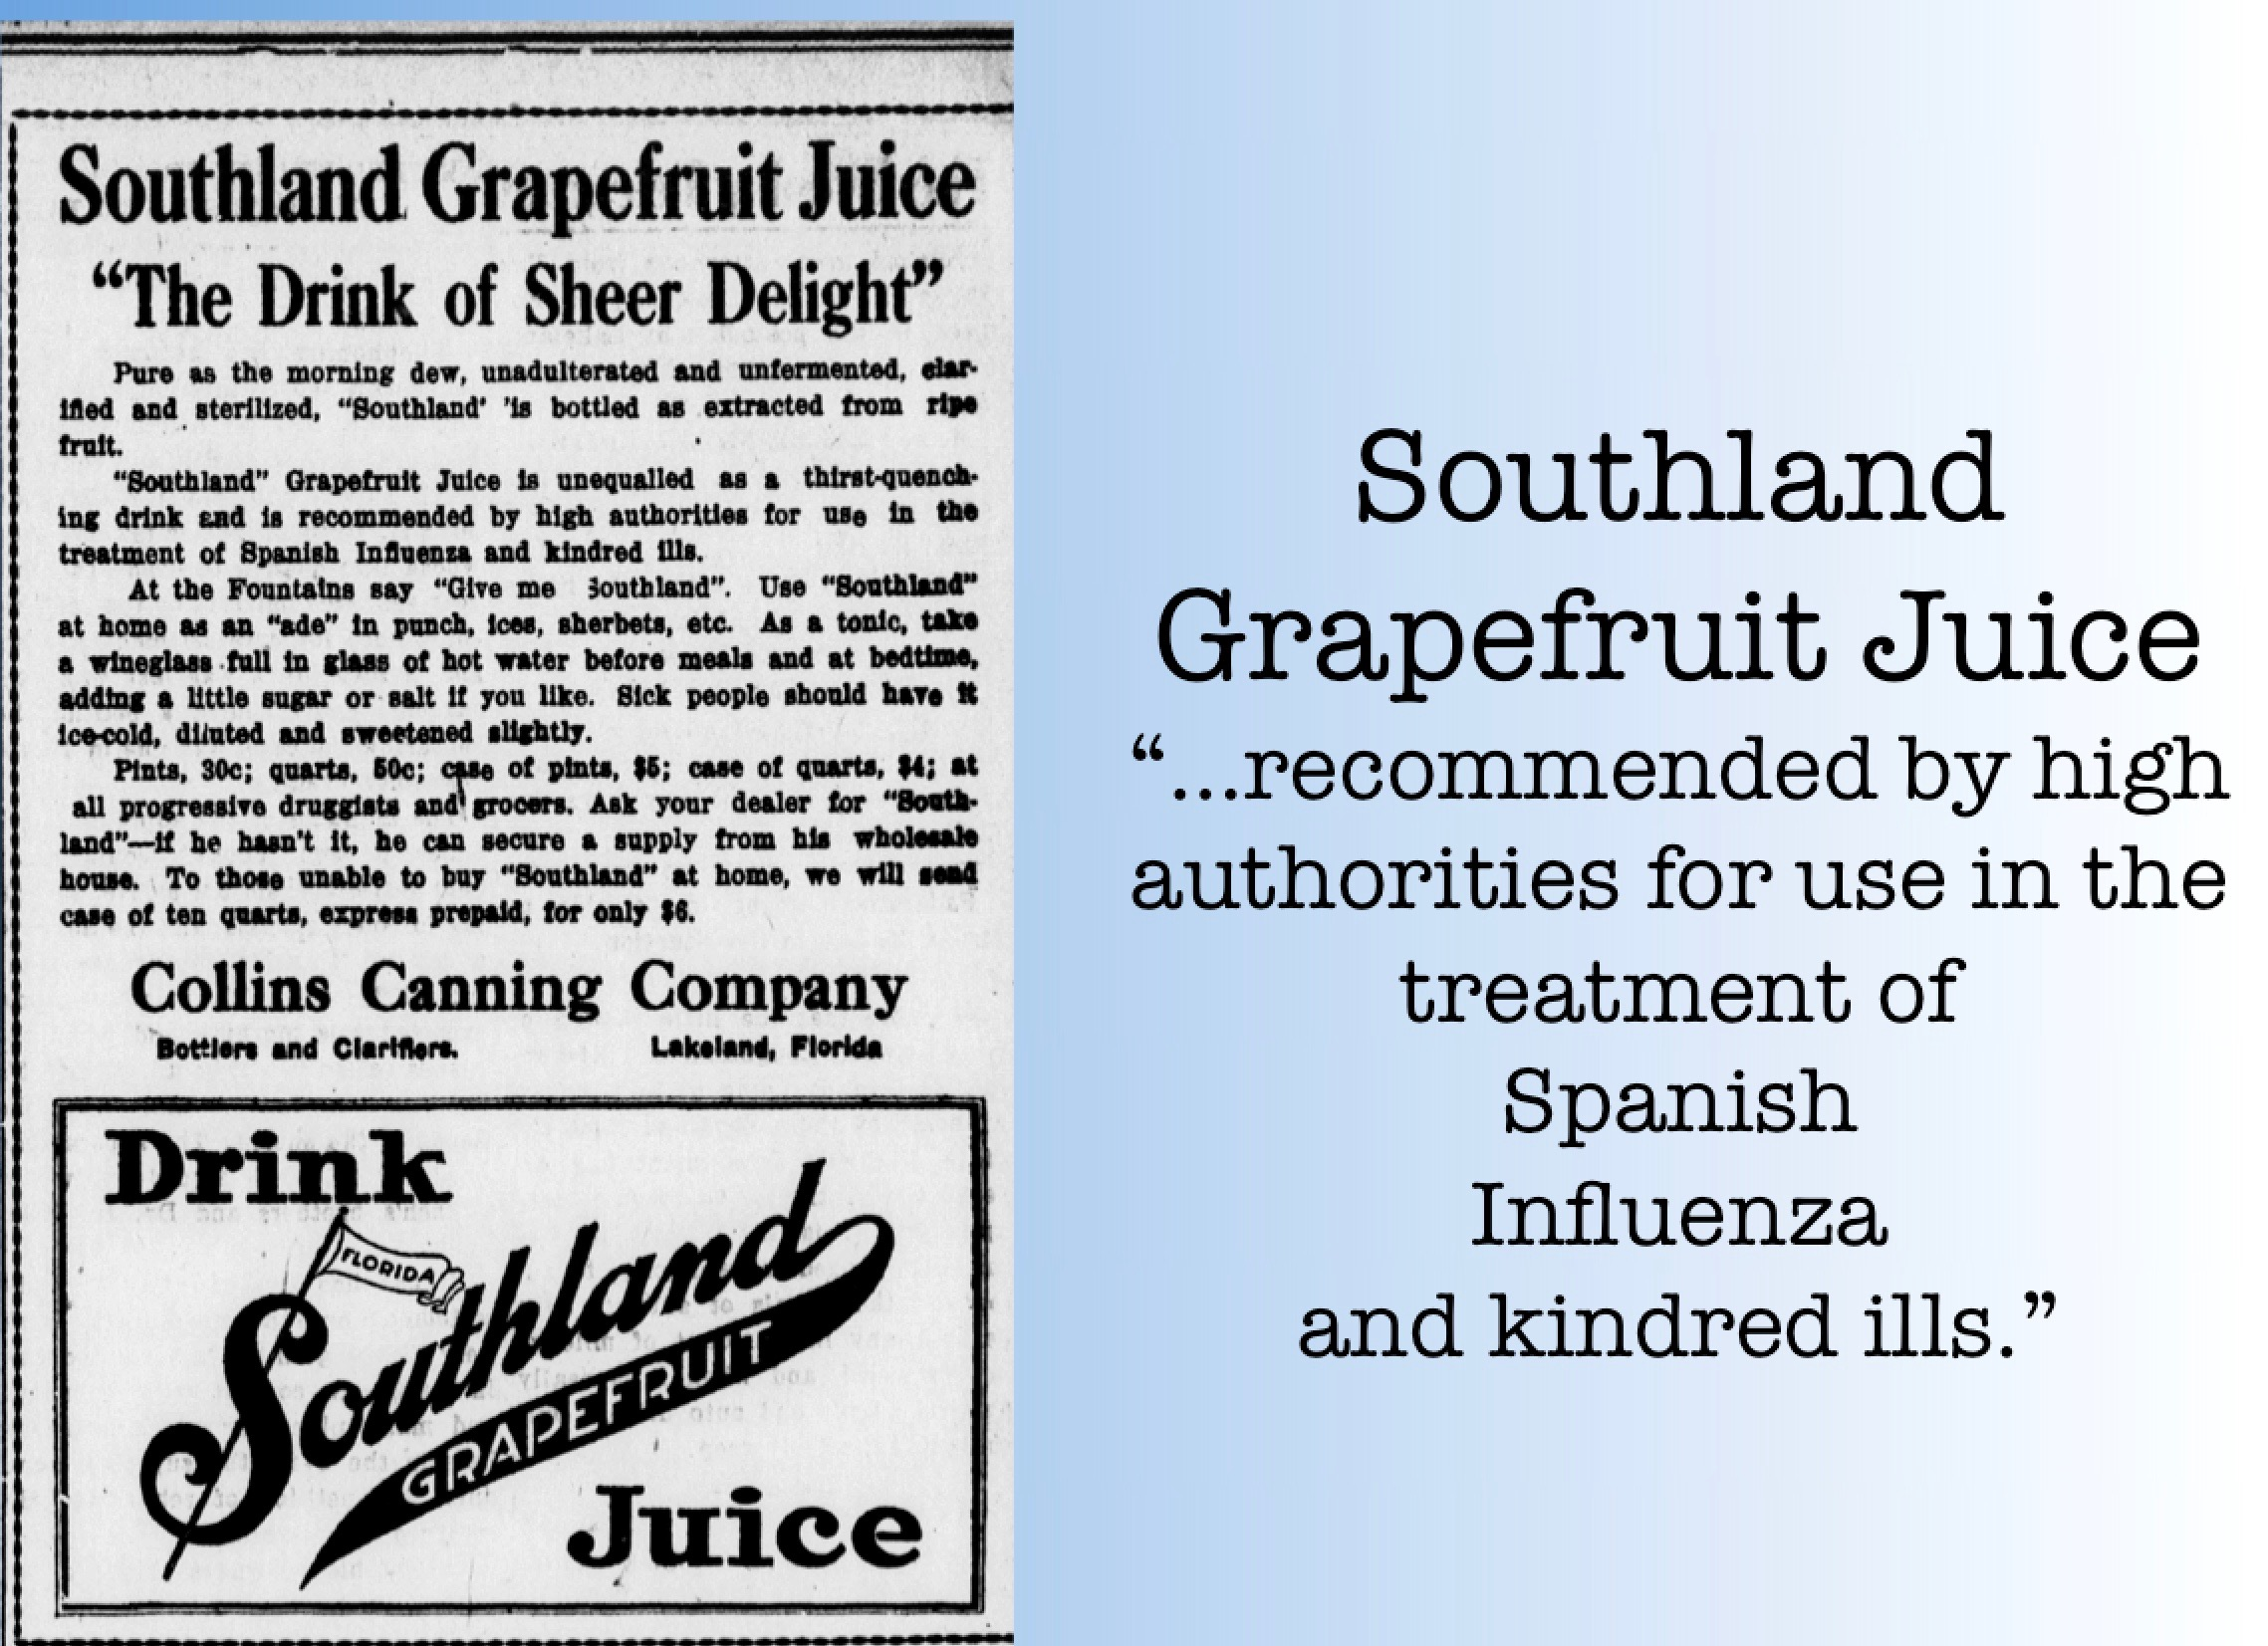 Grapefruit Juice Treatment?